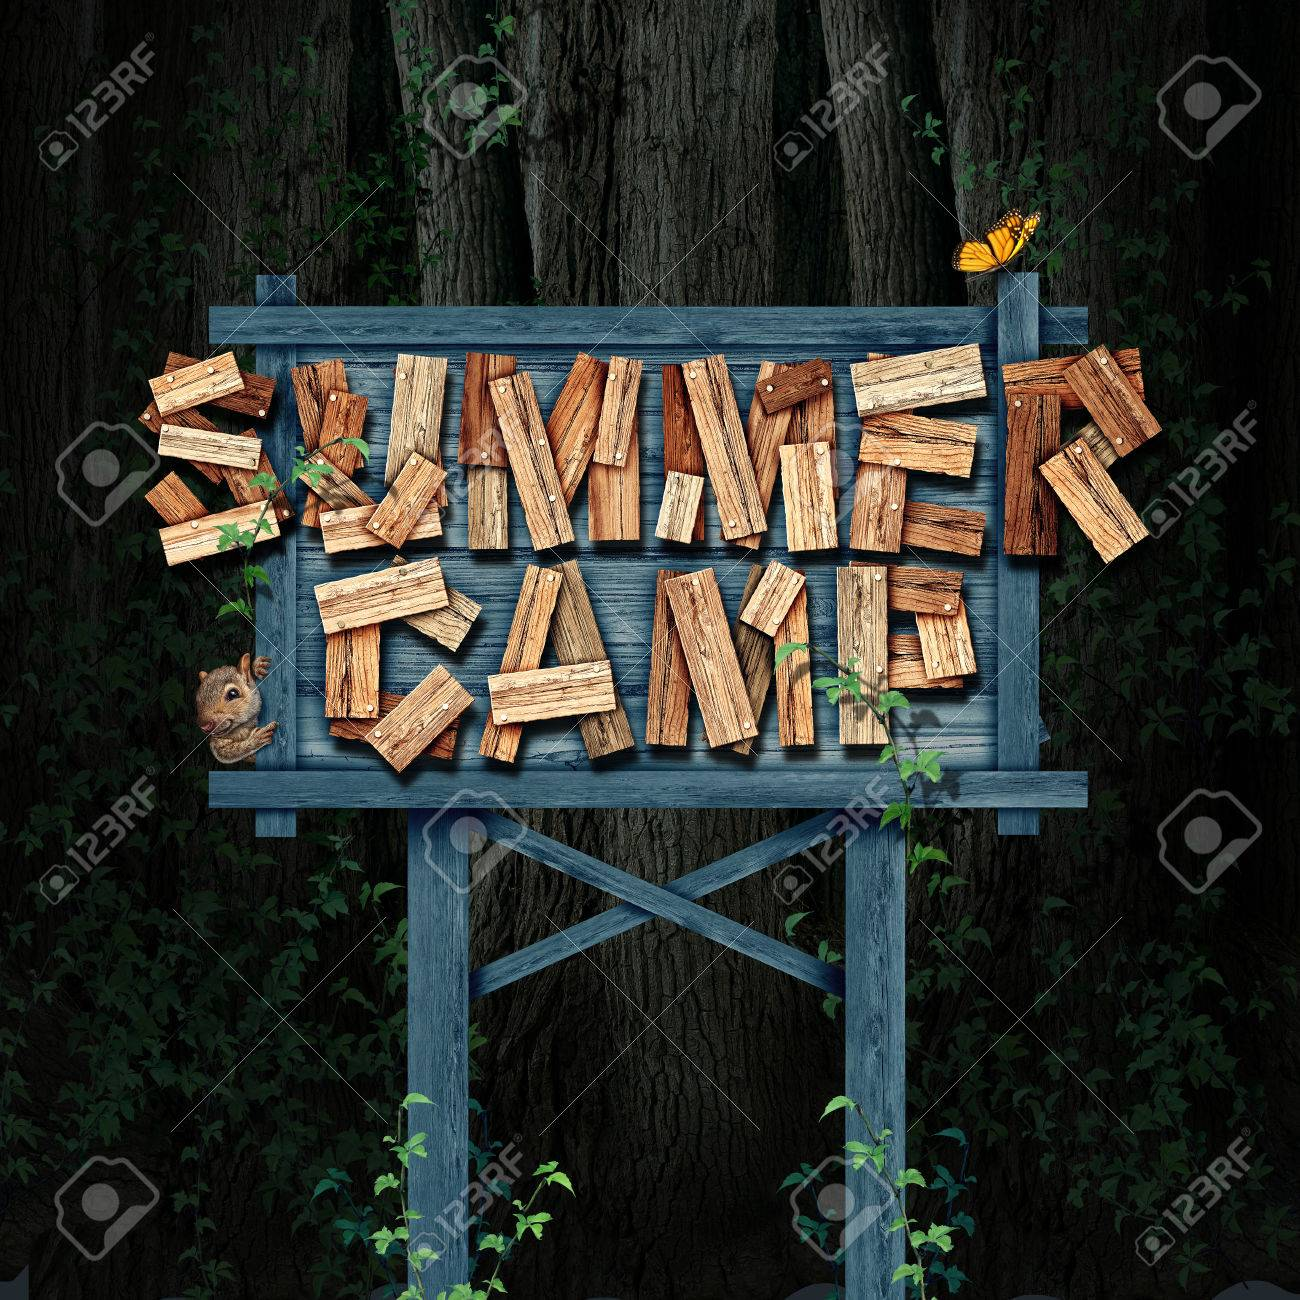 Summer Camp Nature Sign Text Made Of Rustic Wood In A Forest Stock